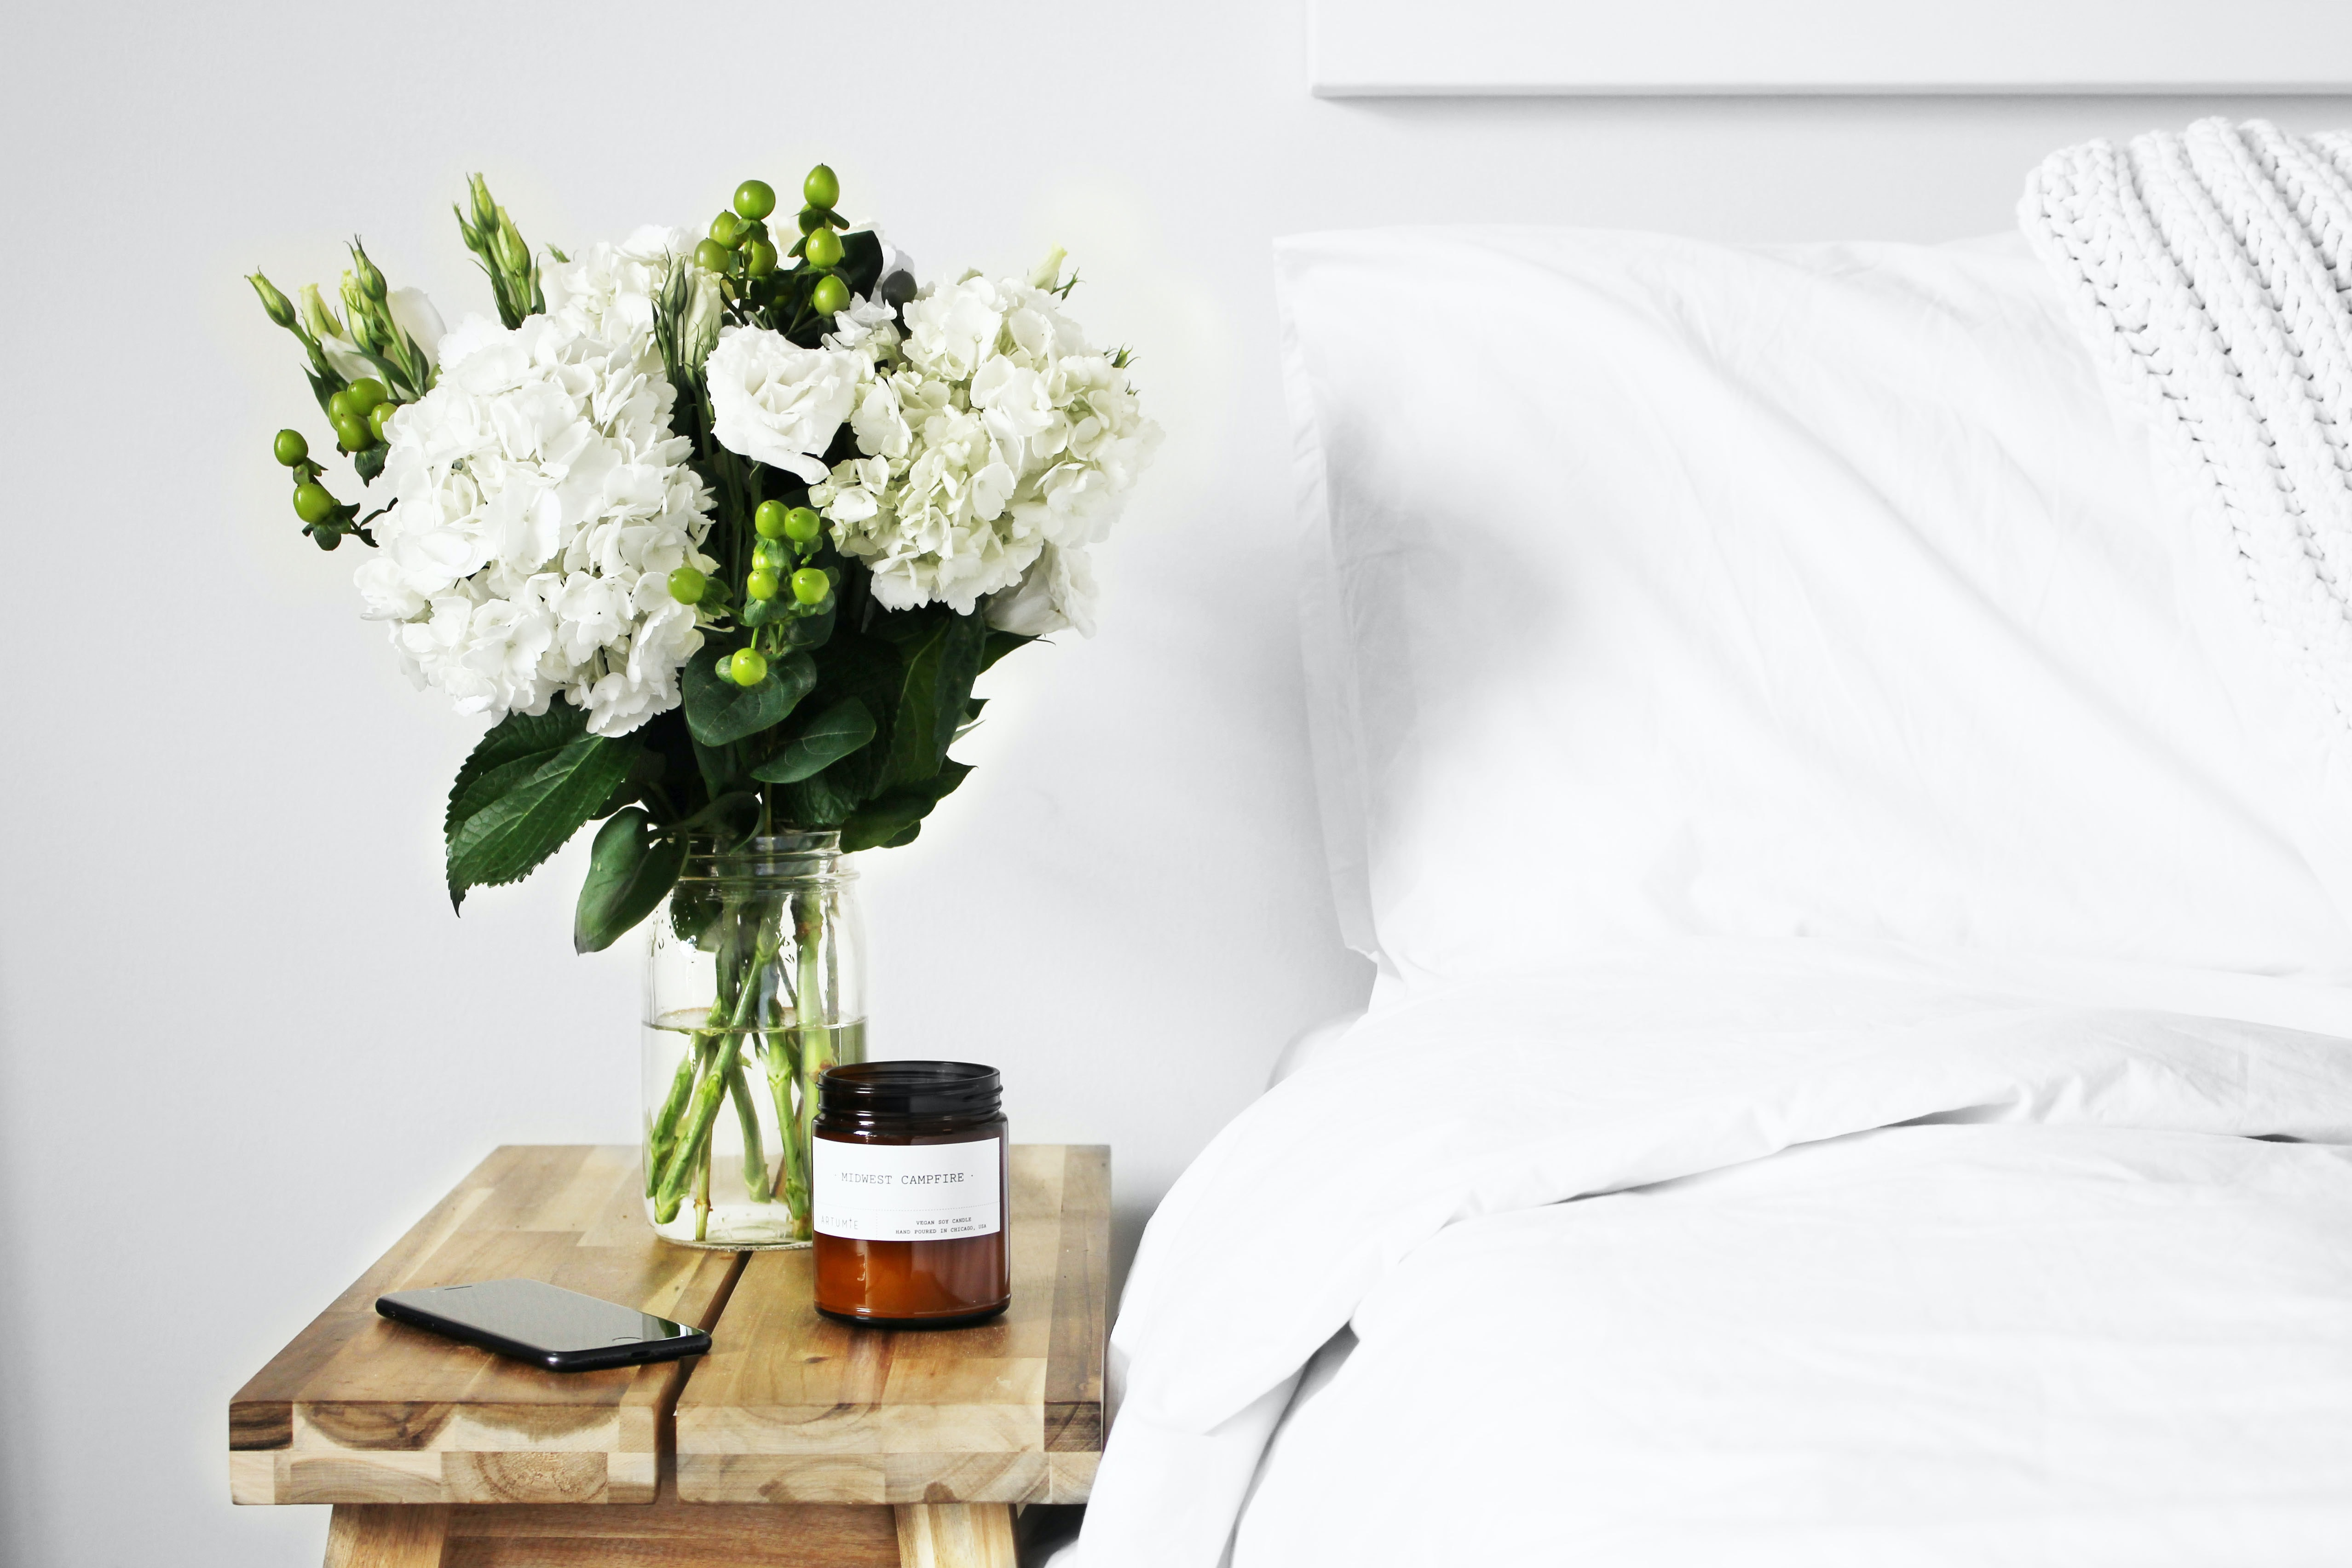 White Company Bedding HK – My Honest Review